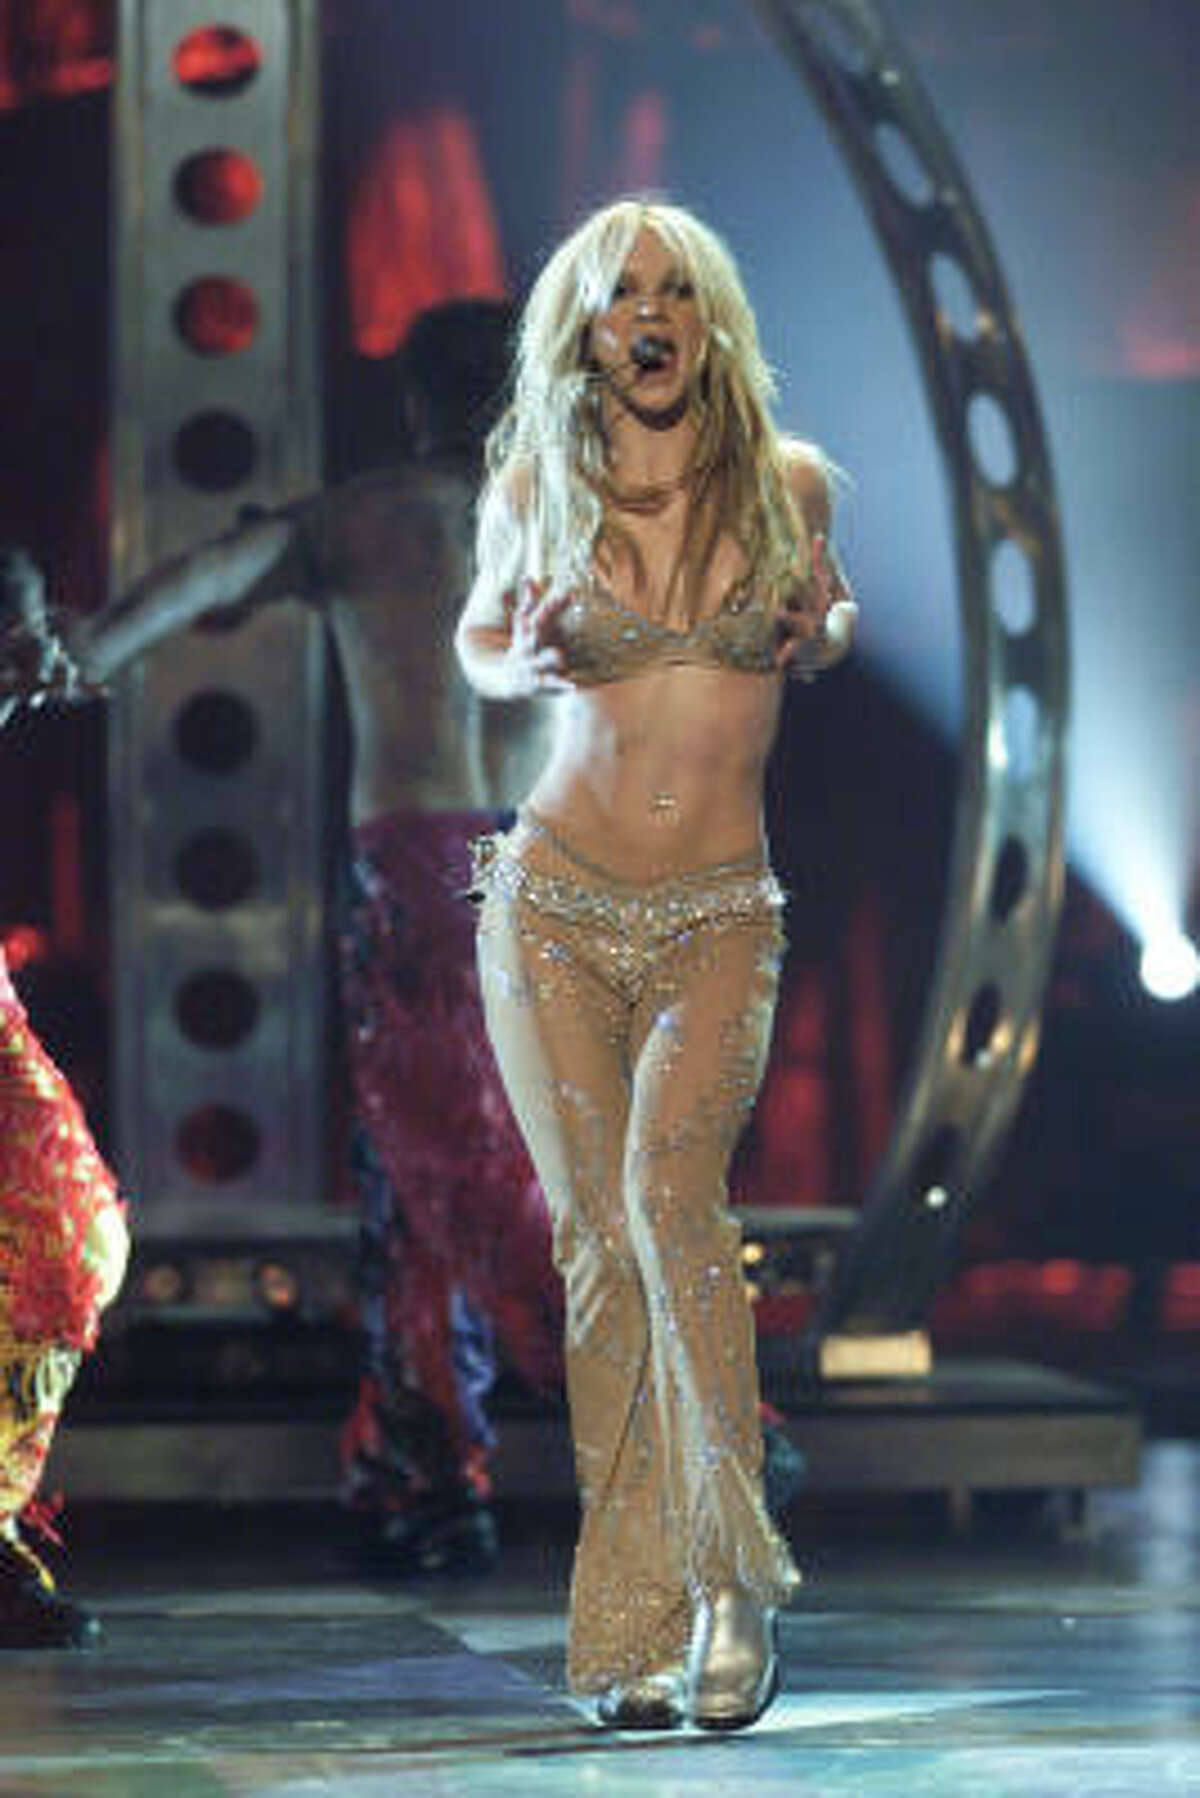 Mr. Blackwell named Spears the top fashion flop of 2000, calling called her two-piece outfits